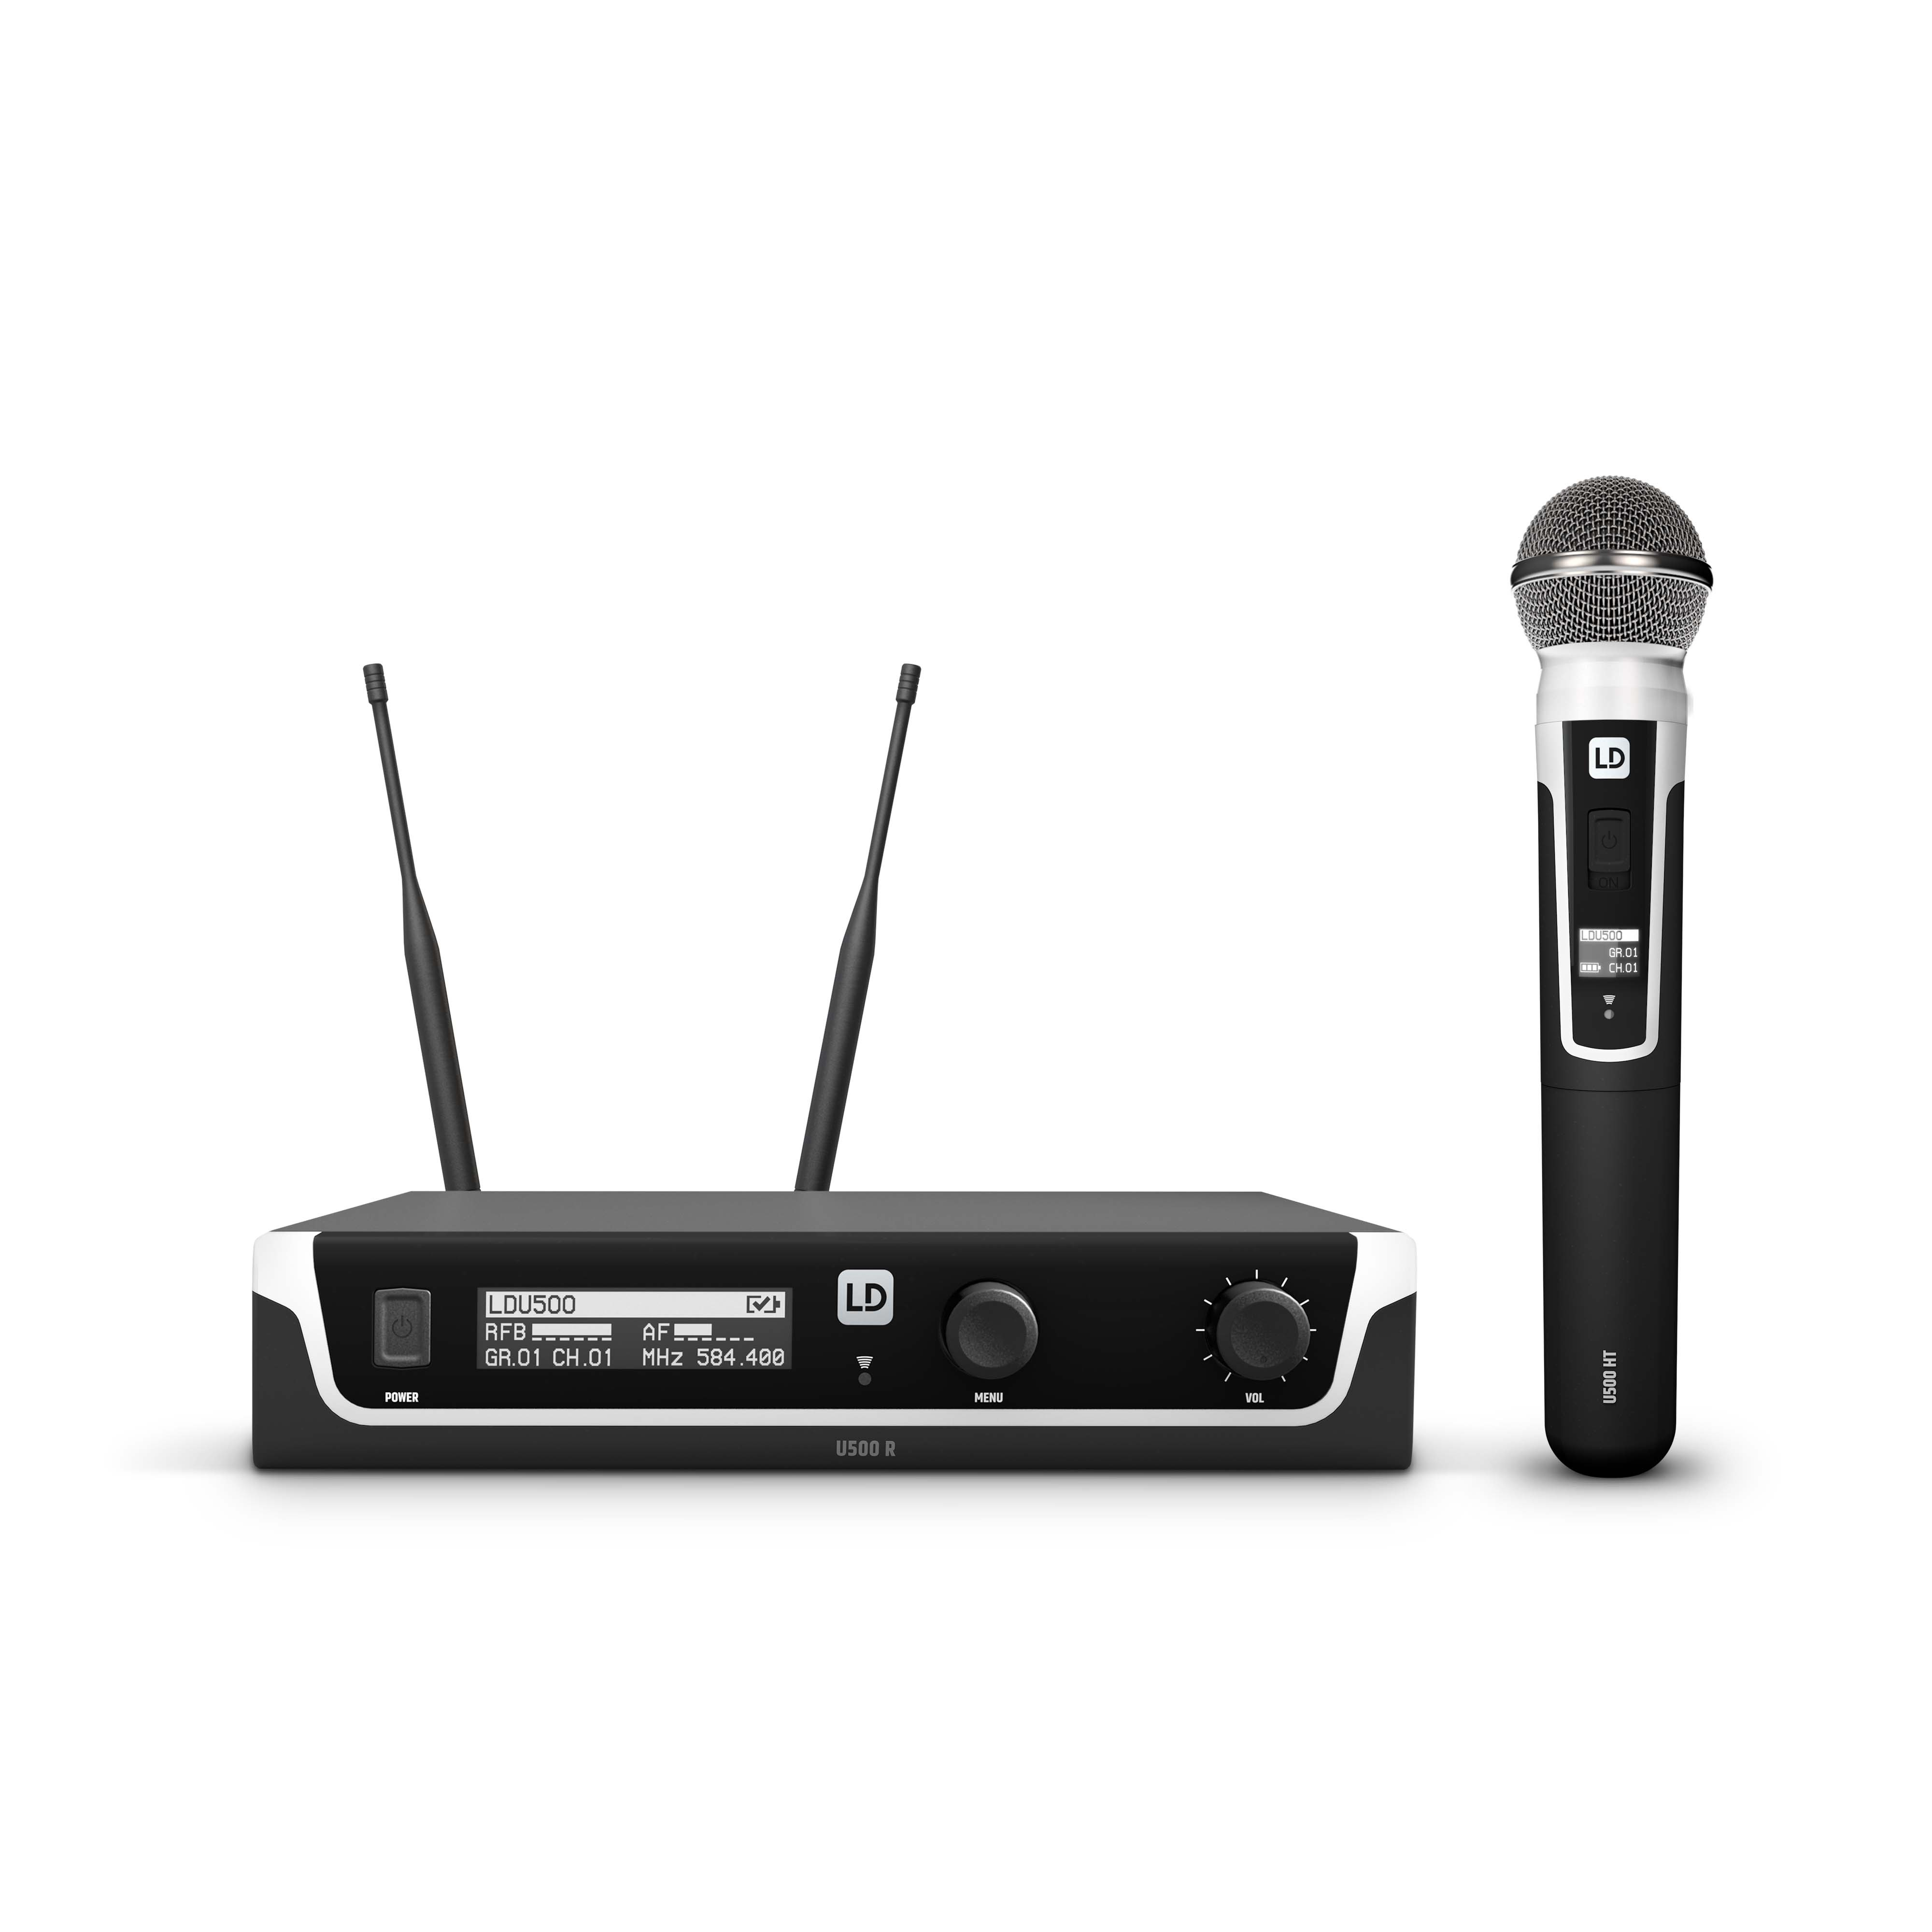 U505 HHD Wireless Microphone System with Dynamic Handheld Microphone